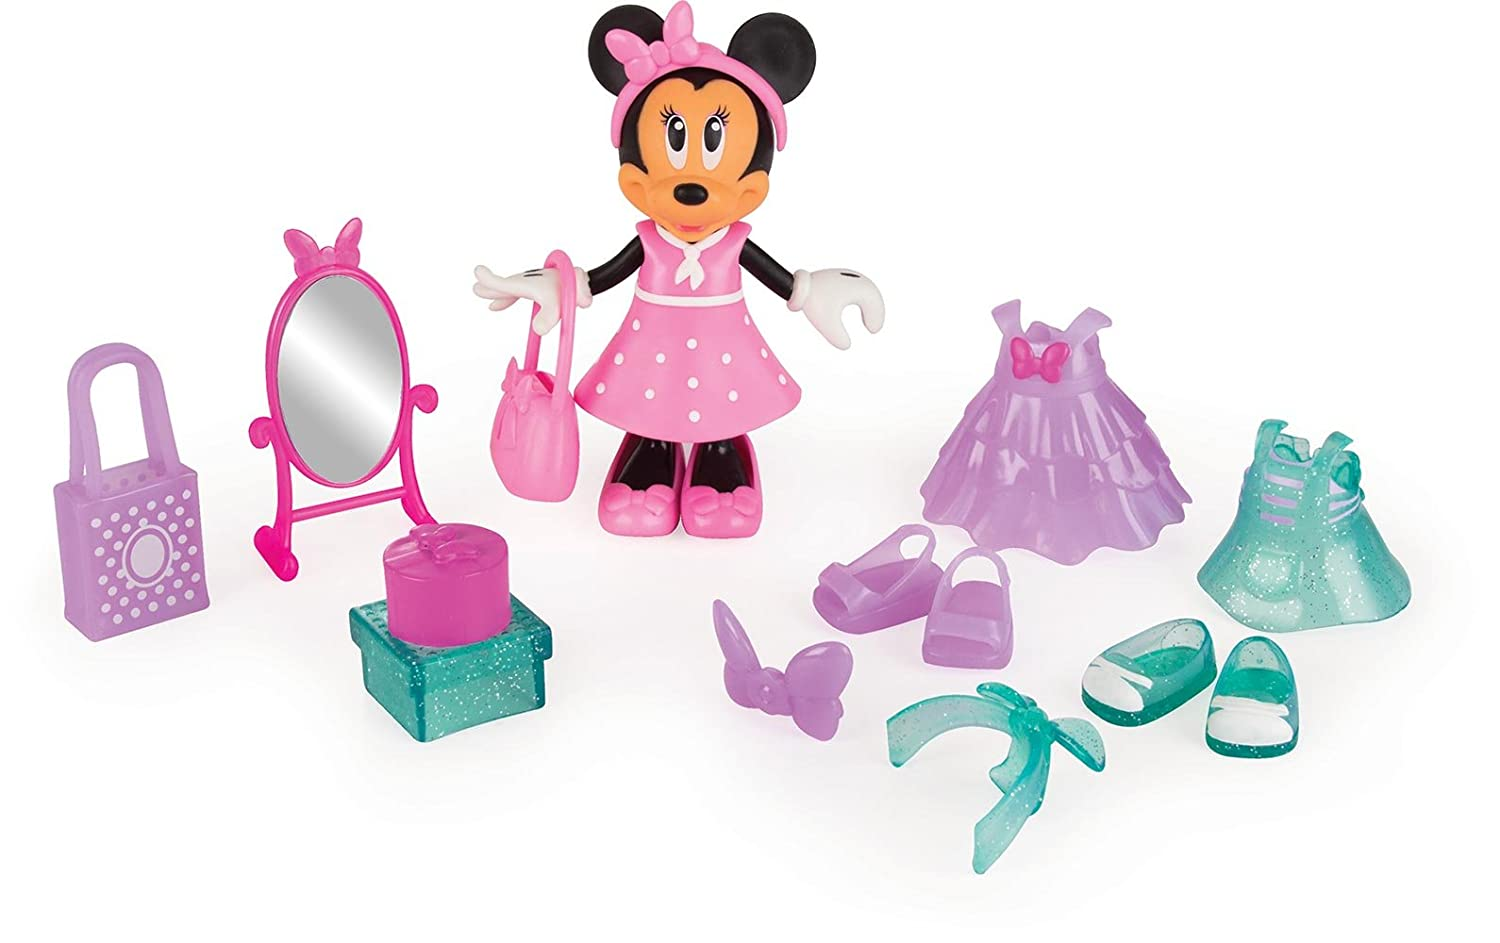 IMC Toys - Minnie Vamos de Shopping (182196)